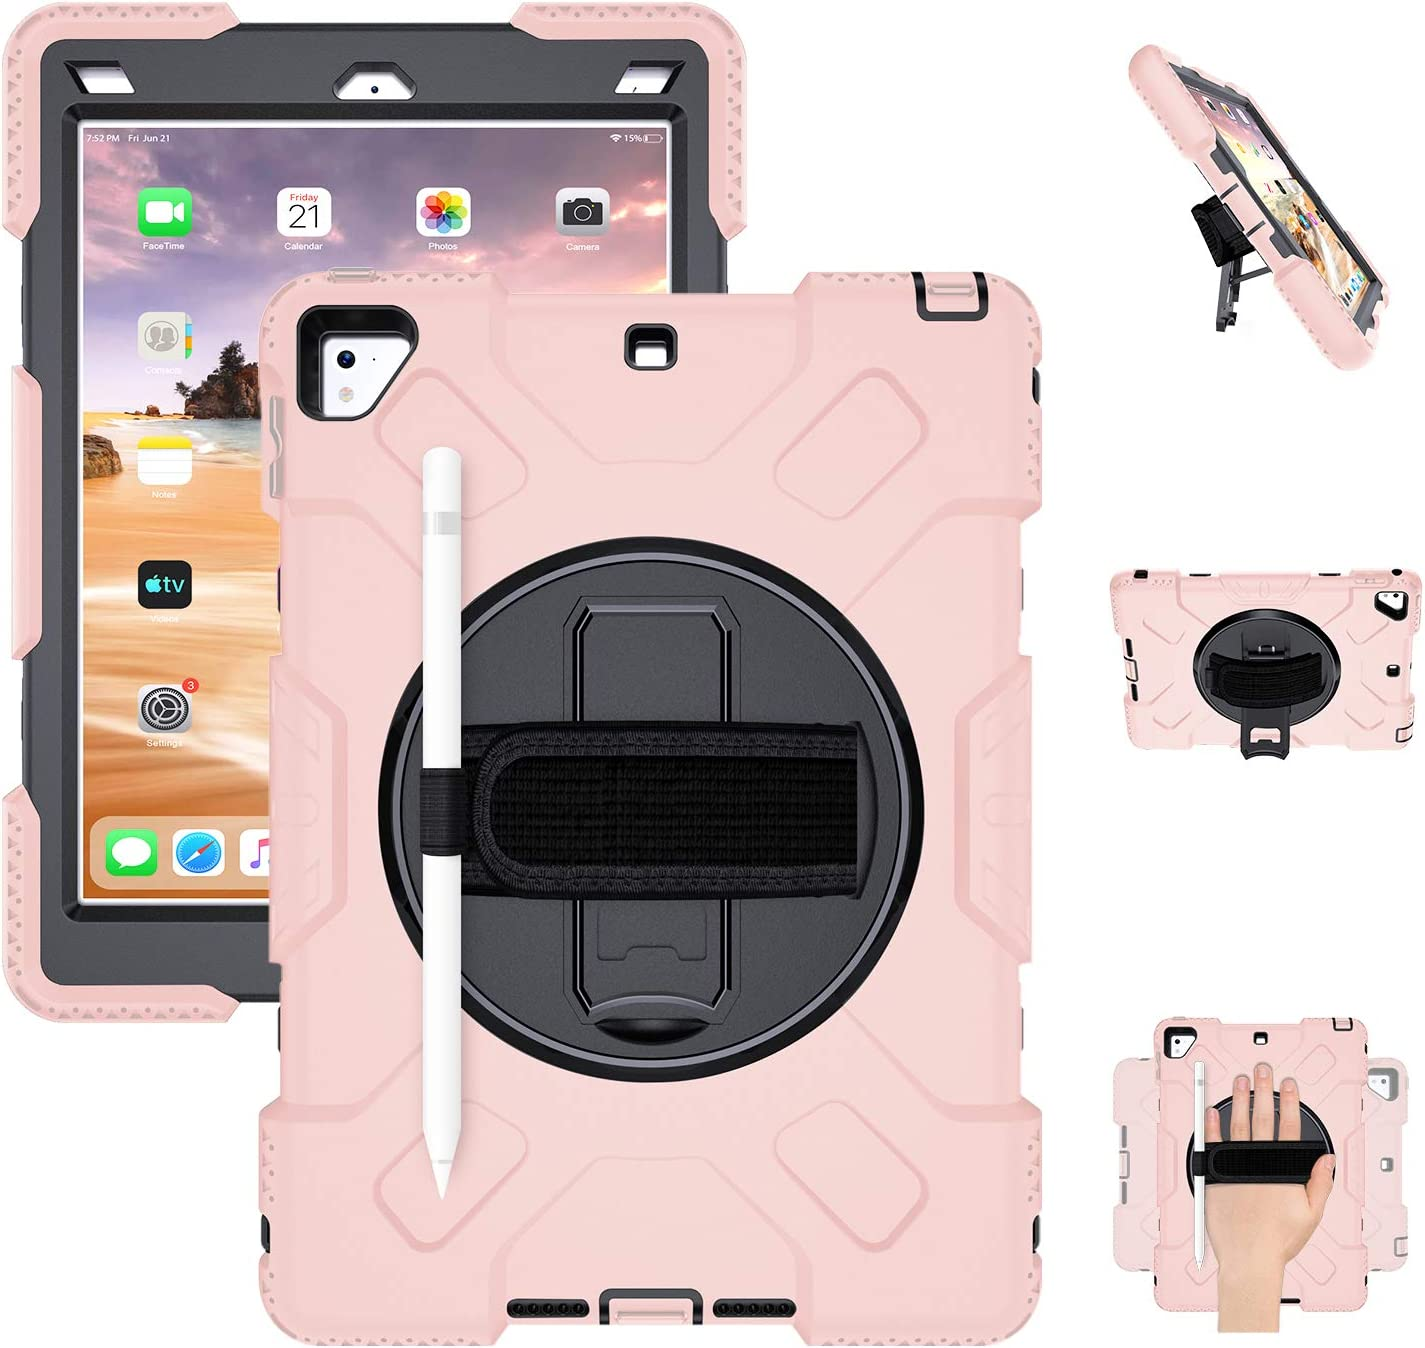 GROLEOA iPad 9.7 Case 6th/5th Generation iPad Case Heavy Duty Rugged Protective Shockproof Case Cover 360 Rotation Stand Hand Strap Shoulder Strap Pencil Holder for 6th 5th iPad Air 2 Pro 9.7 Pink